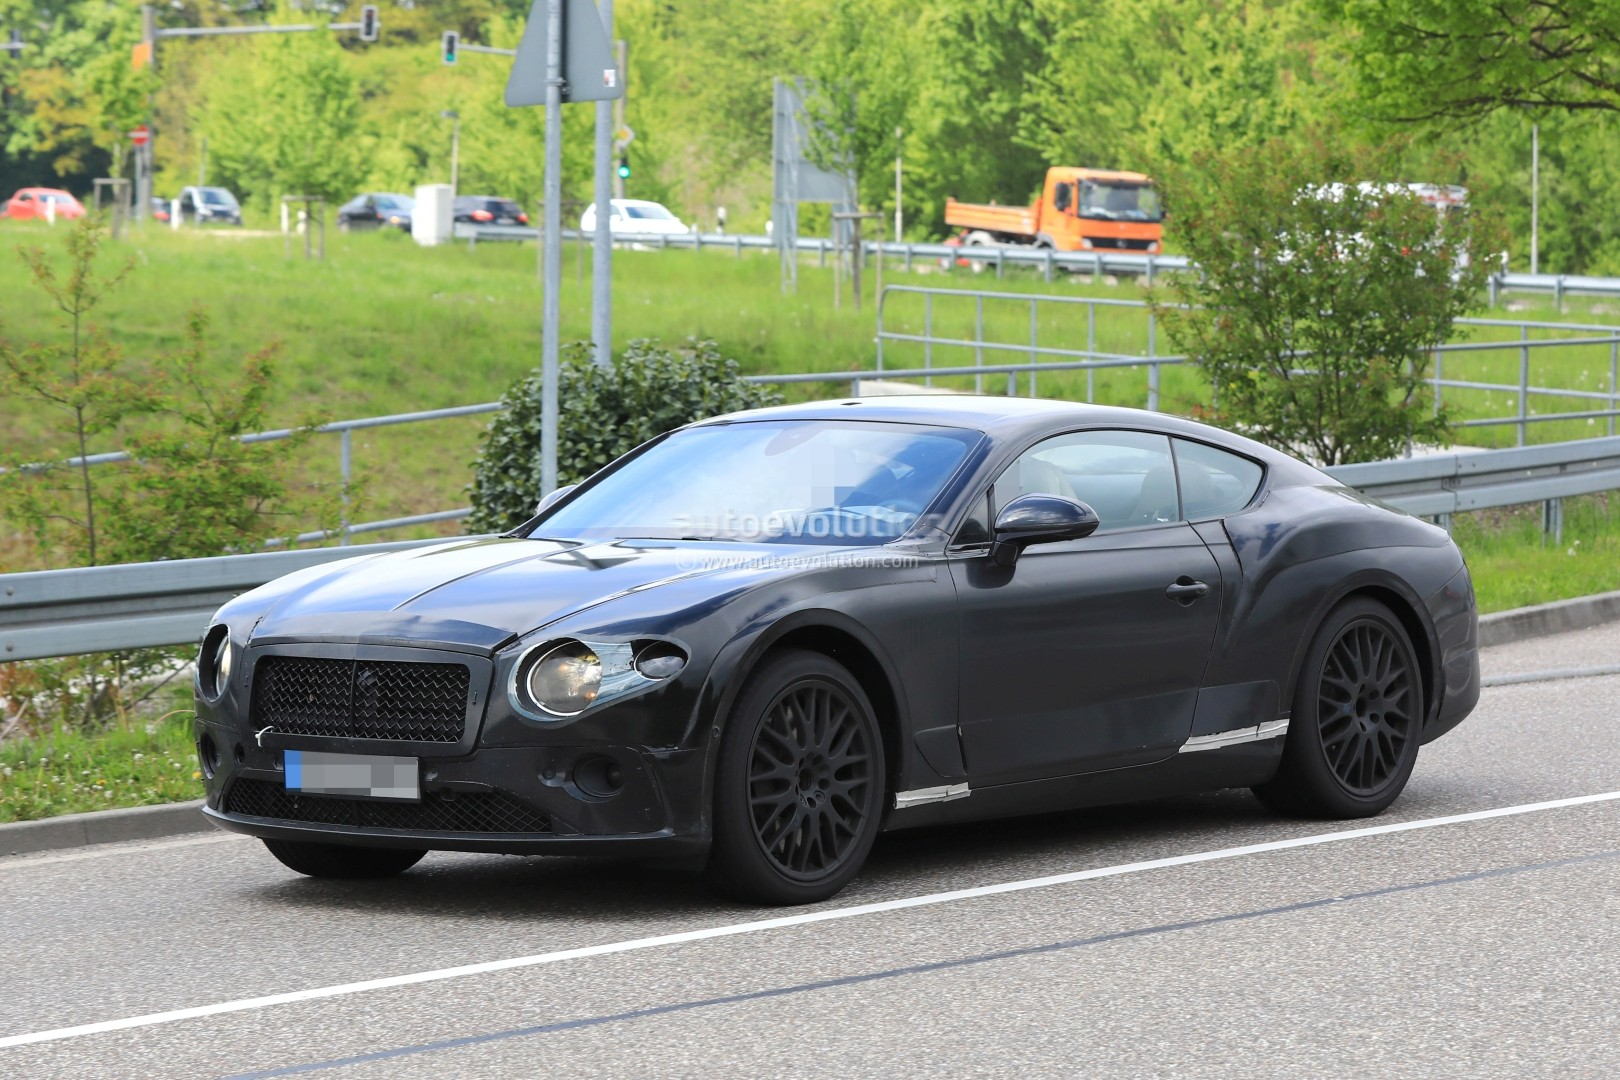 Bentley Continental Gt Shows New Features In First Interior Spyshots